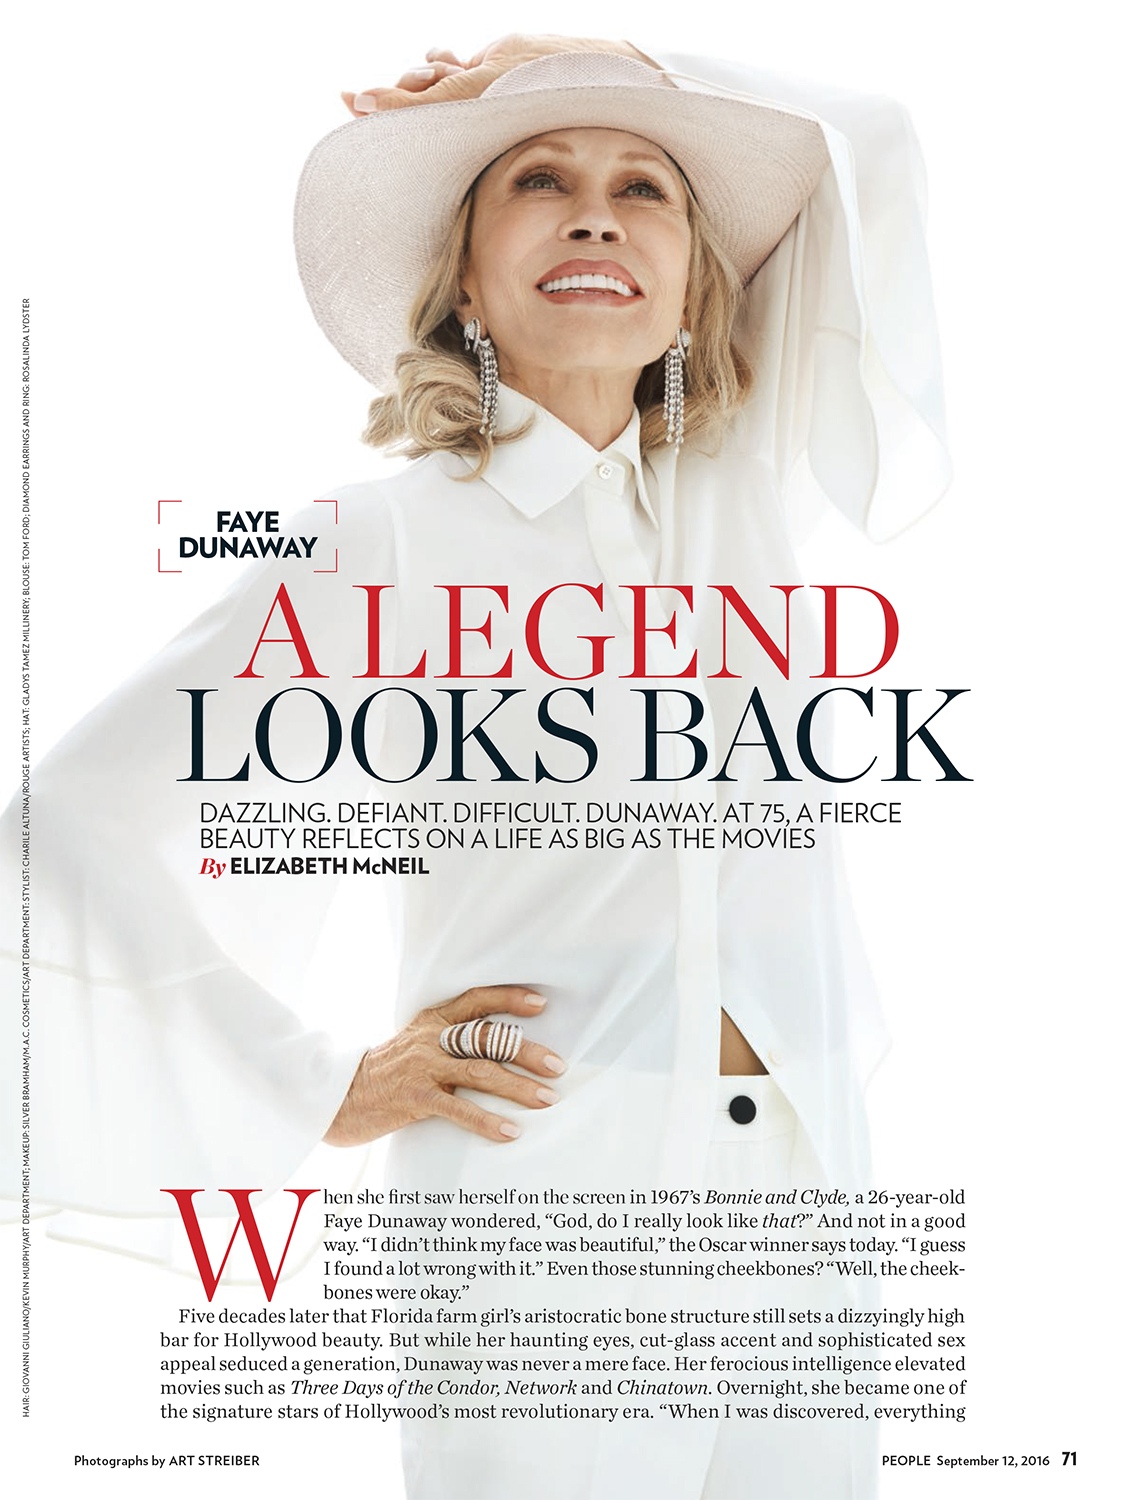 Faye Dunaway in the 9-12-16 issue_PEO_20160912_71_1268894_ARTICLE-1.jpg